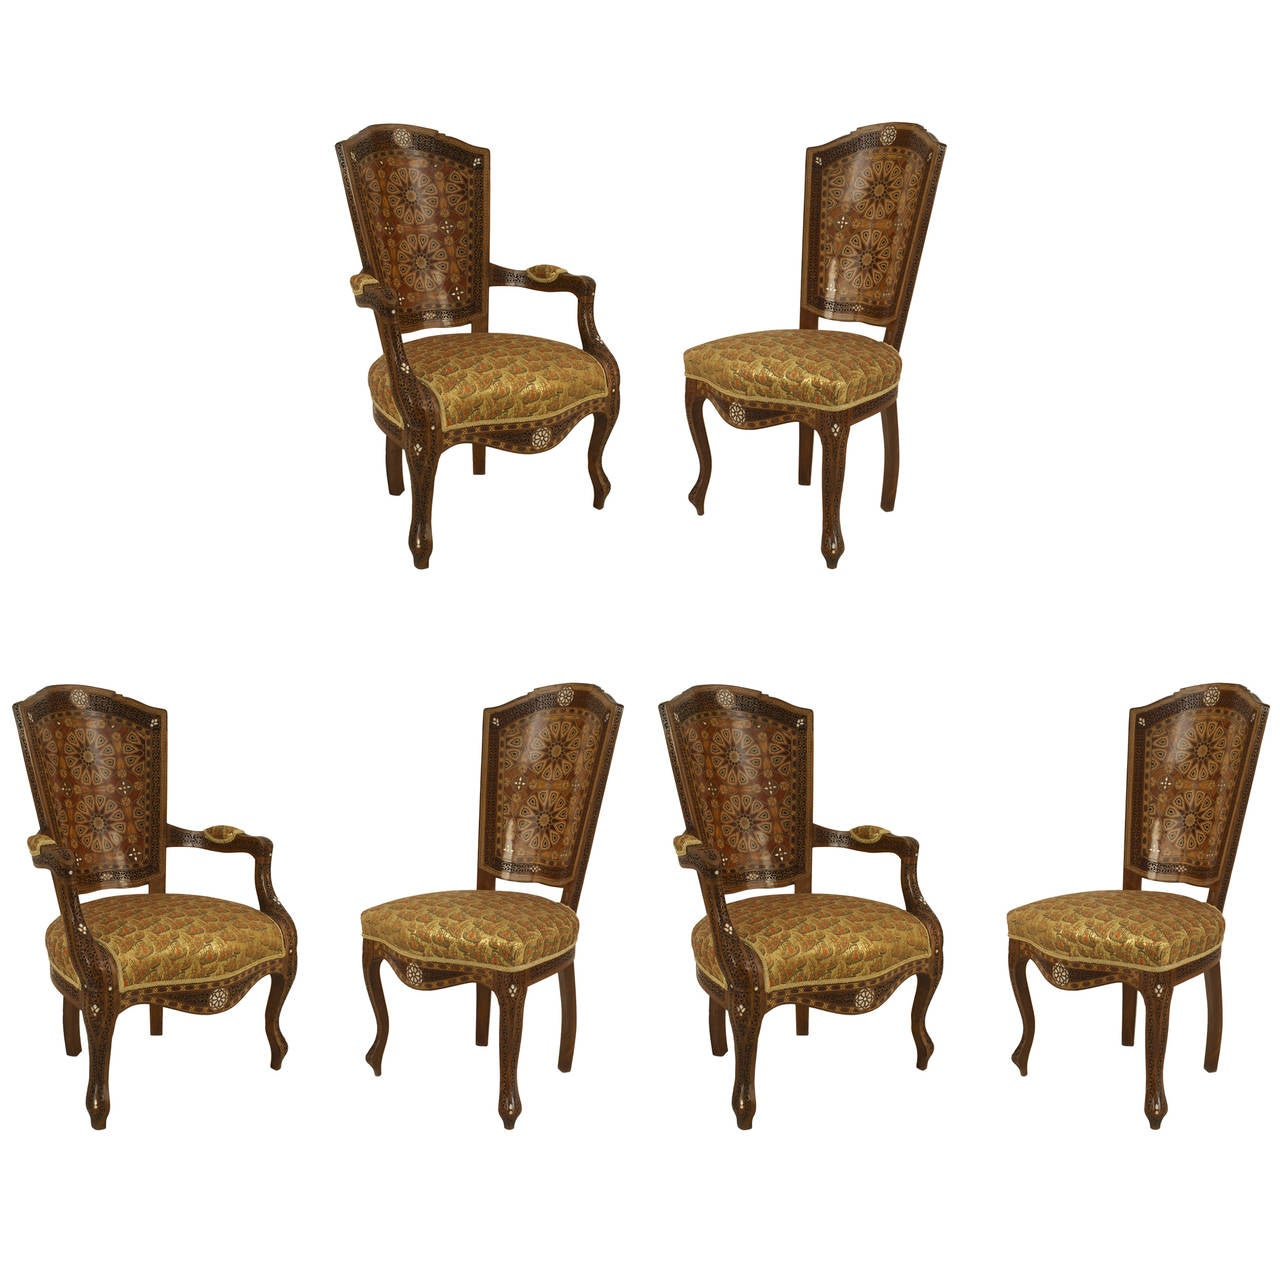 set of six dining chairs for sale office chair kohls middle eastern inlaid at